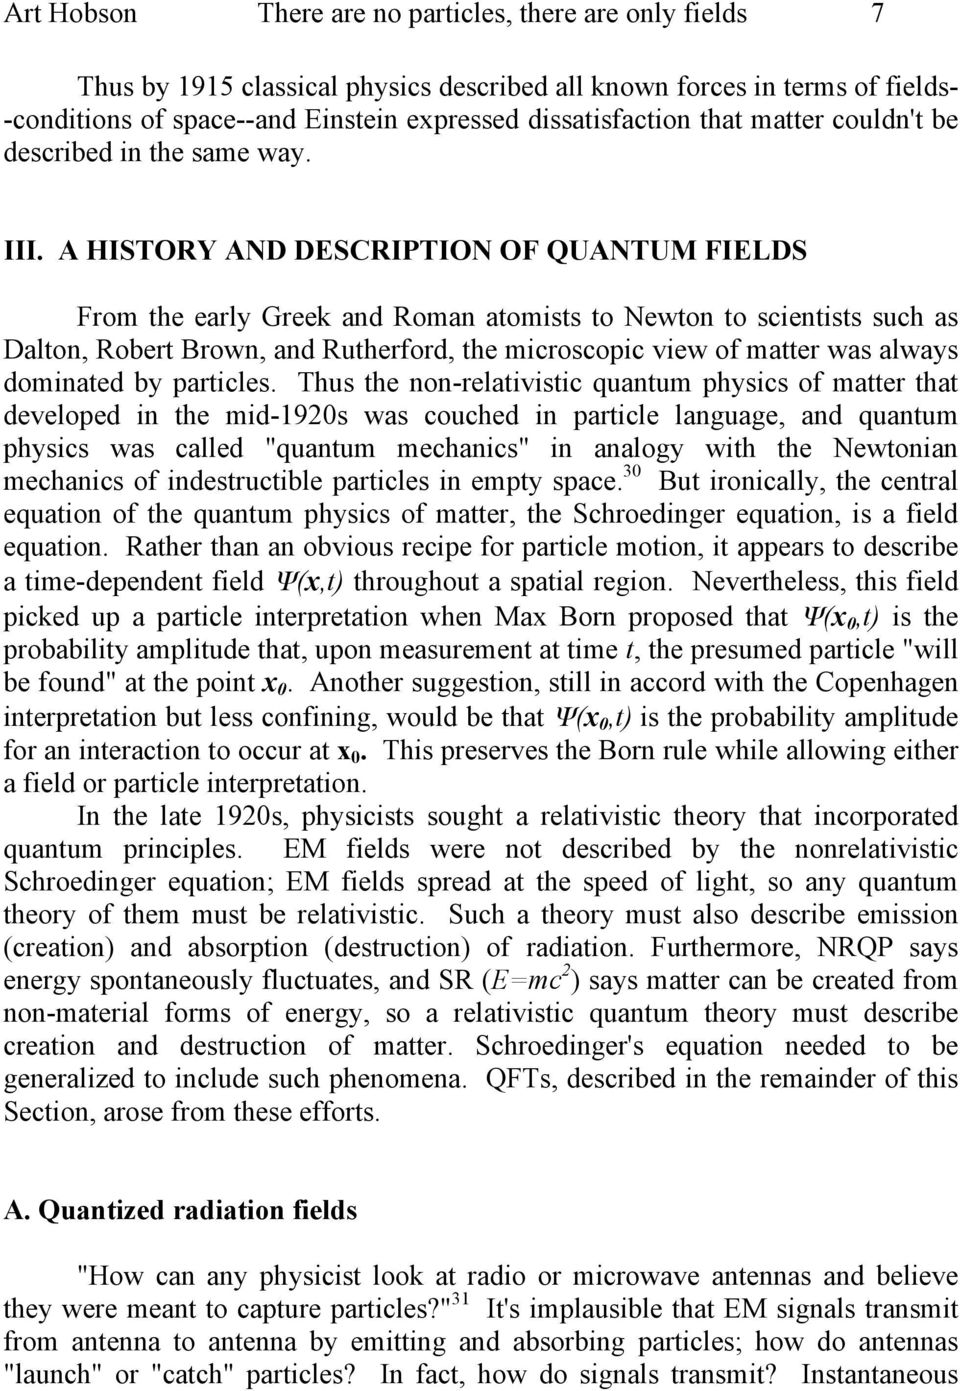 A HISTORY AND DESCRIPTION OF QUANTUM FIELDS From the early Greek and Roman atomists to Newton to scientists such as Dalton, Robert Brown, and Rutherford, the microscopic view of matter was always